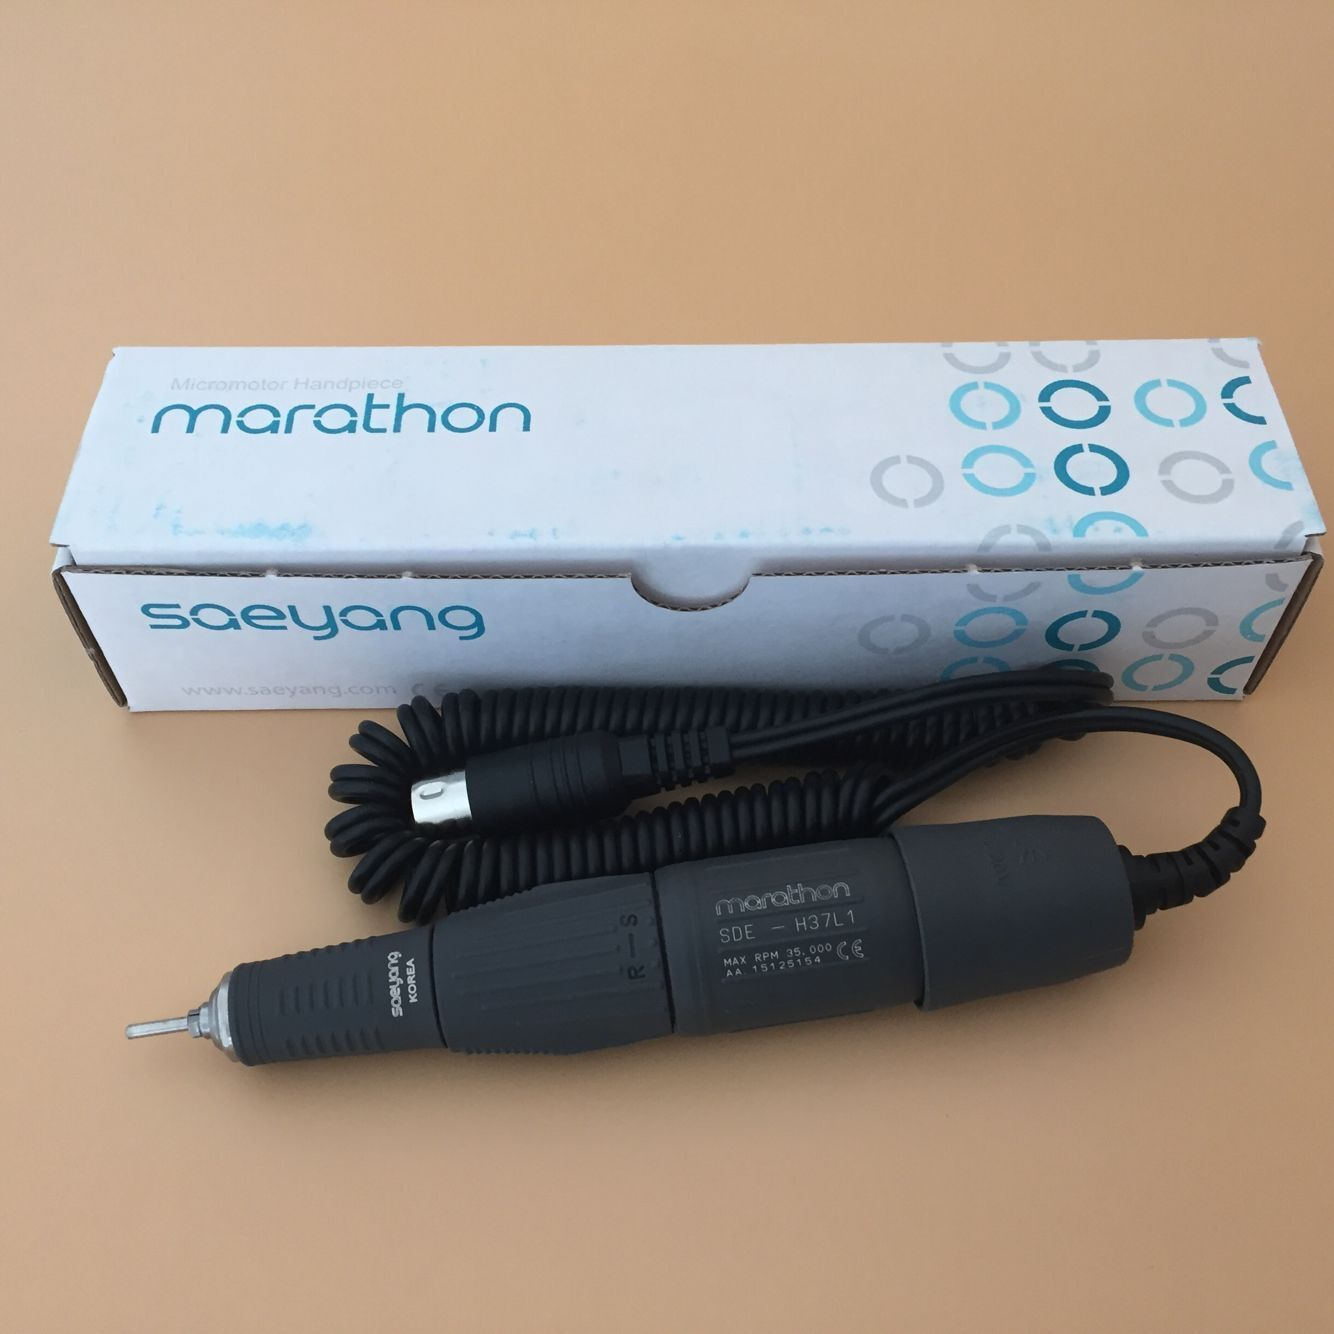 Dental Marathon Lab Electric Micro motor Motor Handpiece for Polishing 35K RPM H37L1 Series Micromotor dental lab marathon handpiece 35k rpm electric micromotor polishing drill burs